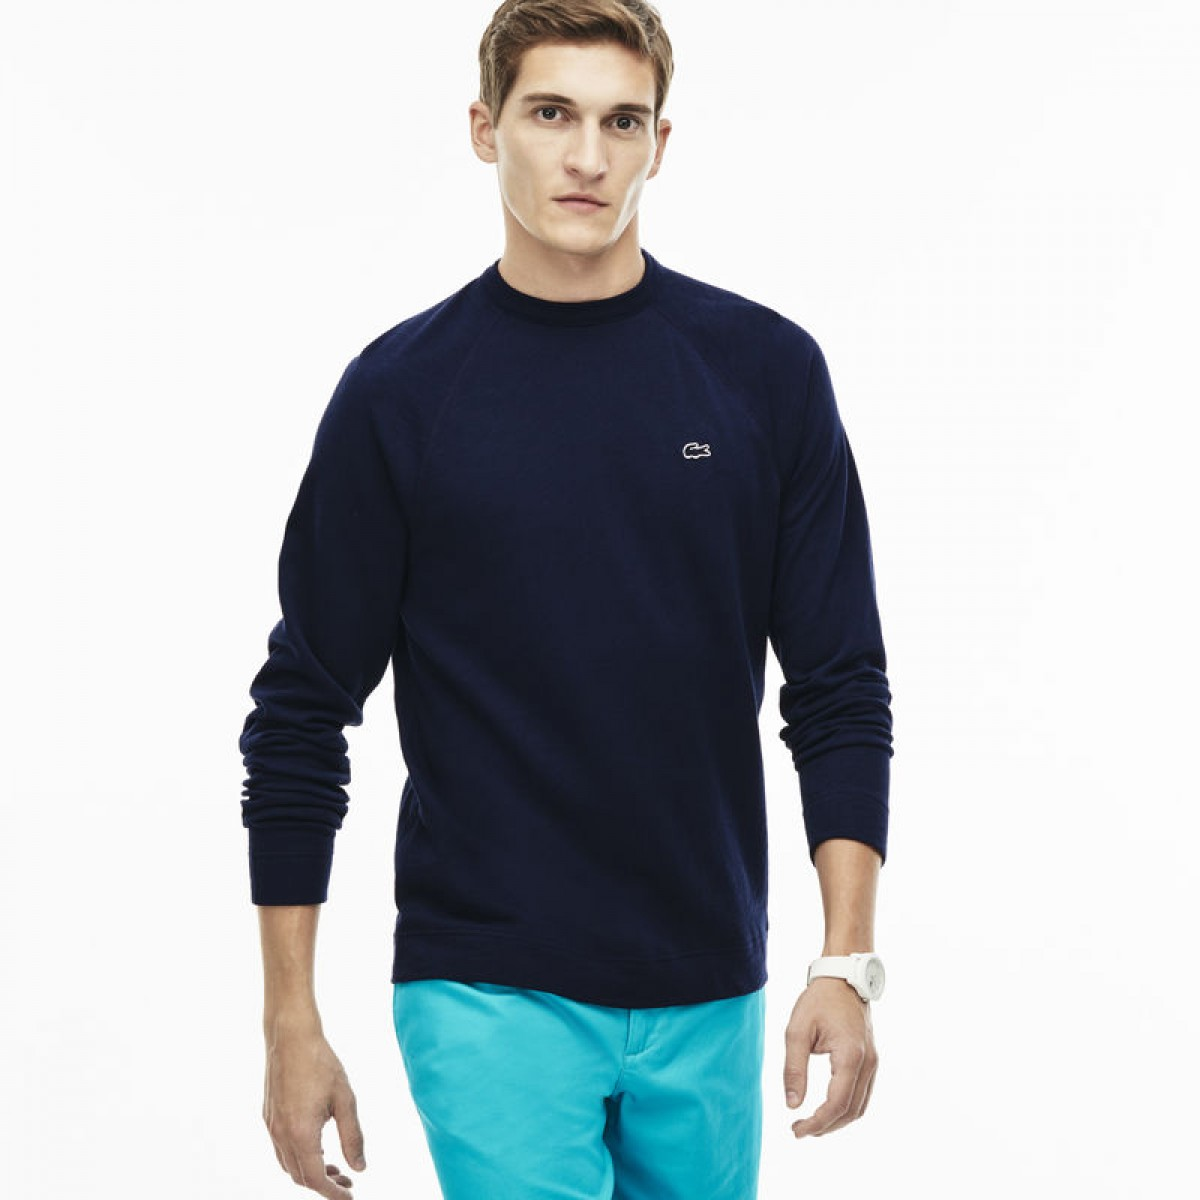 8daa4f7b6834 Lacoste Men s Crew Neck Navy Sweatshirt